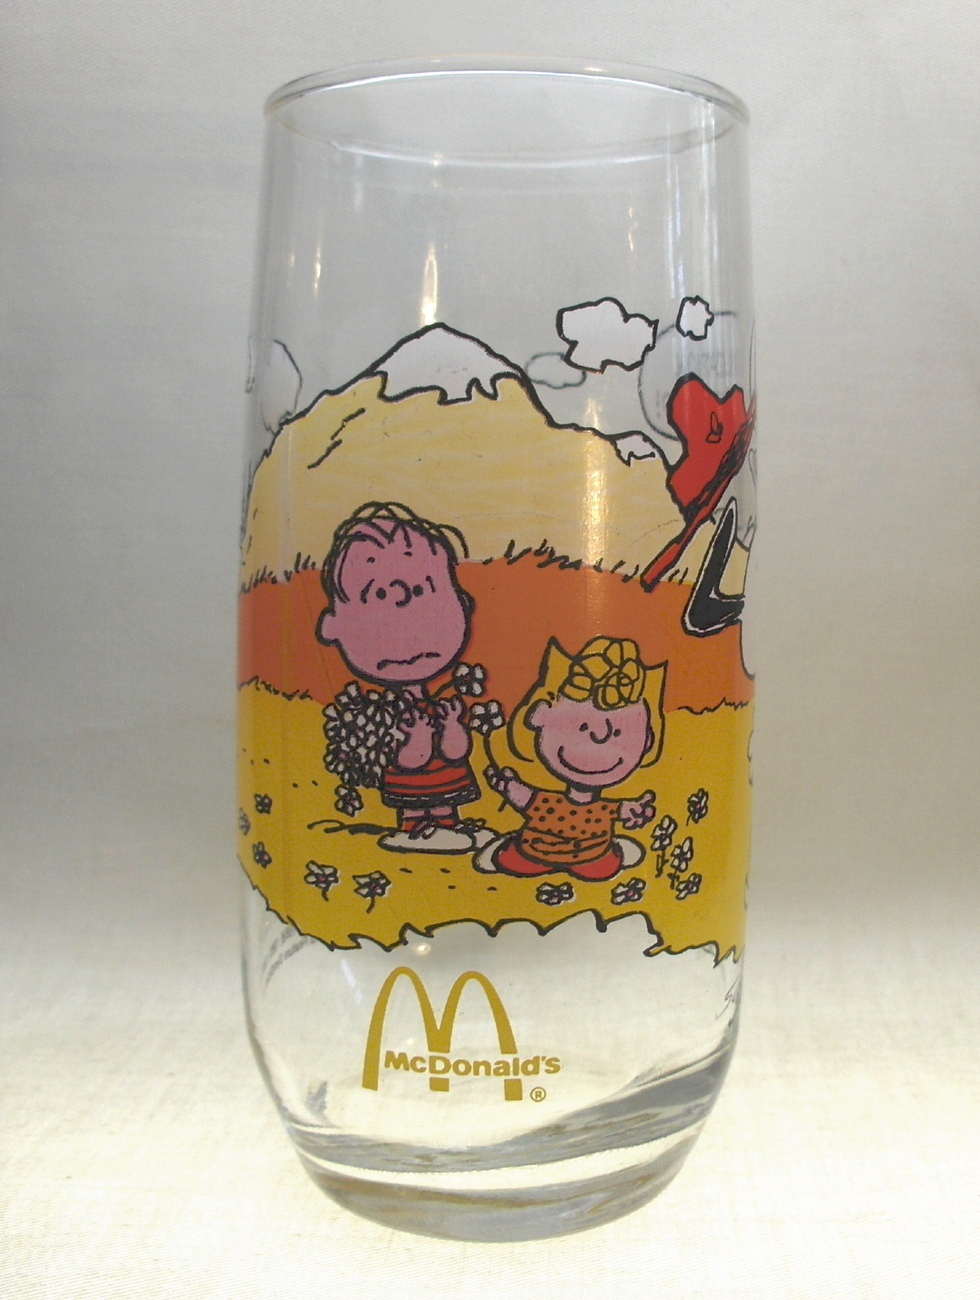 McDonalds Promo Schultz Camp Snoopy Collectors Glass